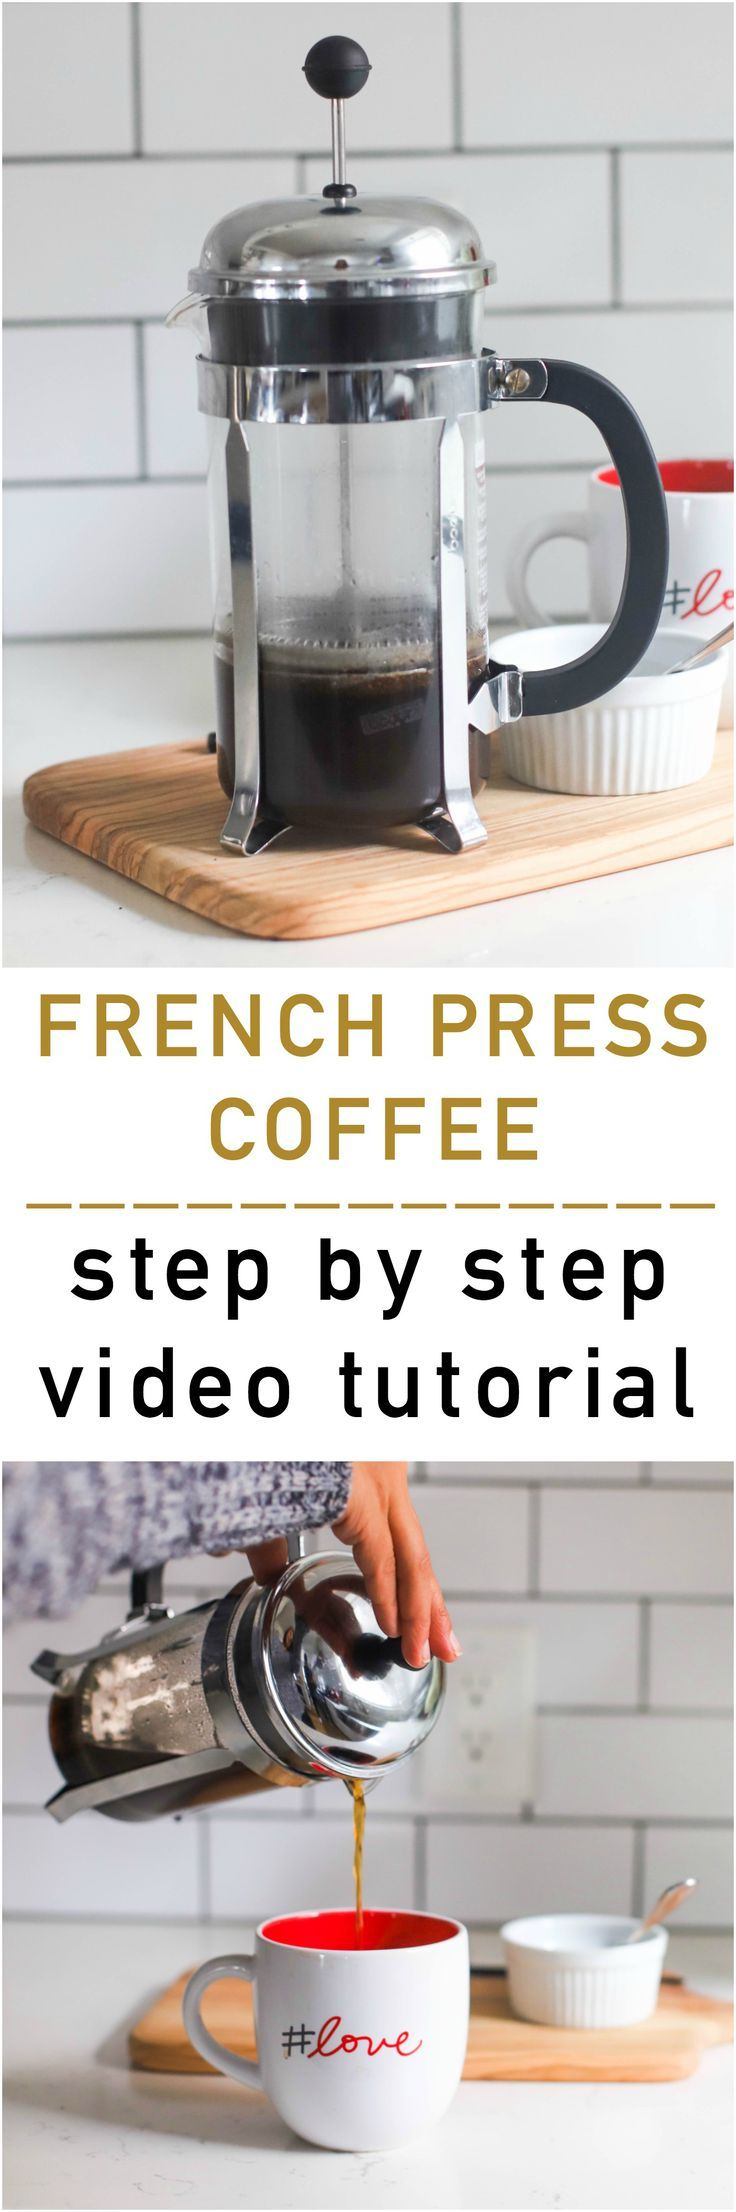 cdc733c802726366e39a80bdf2d8f163 Make Your Own French Press